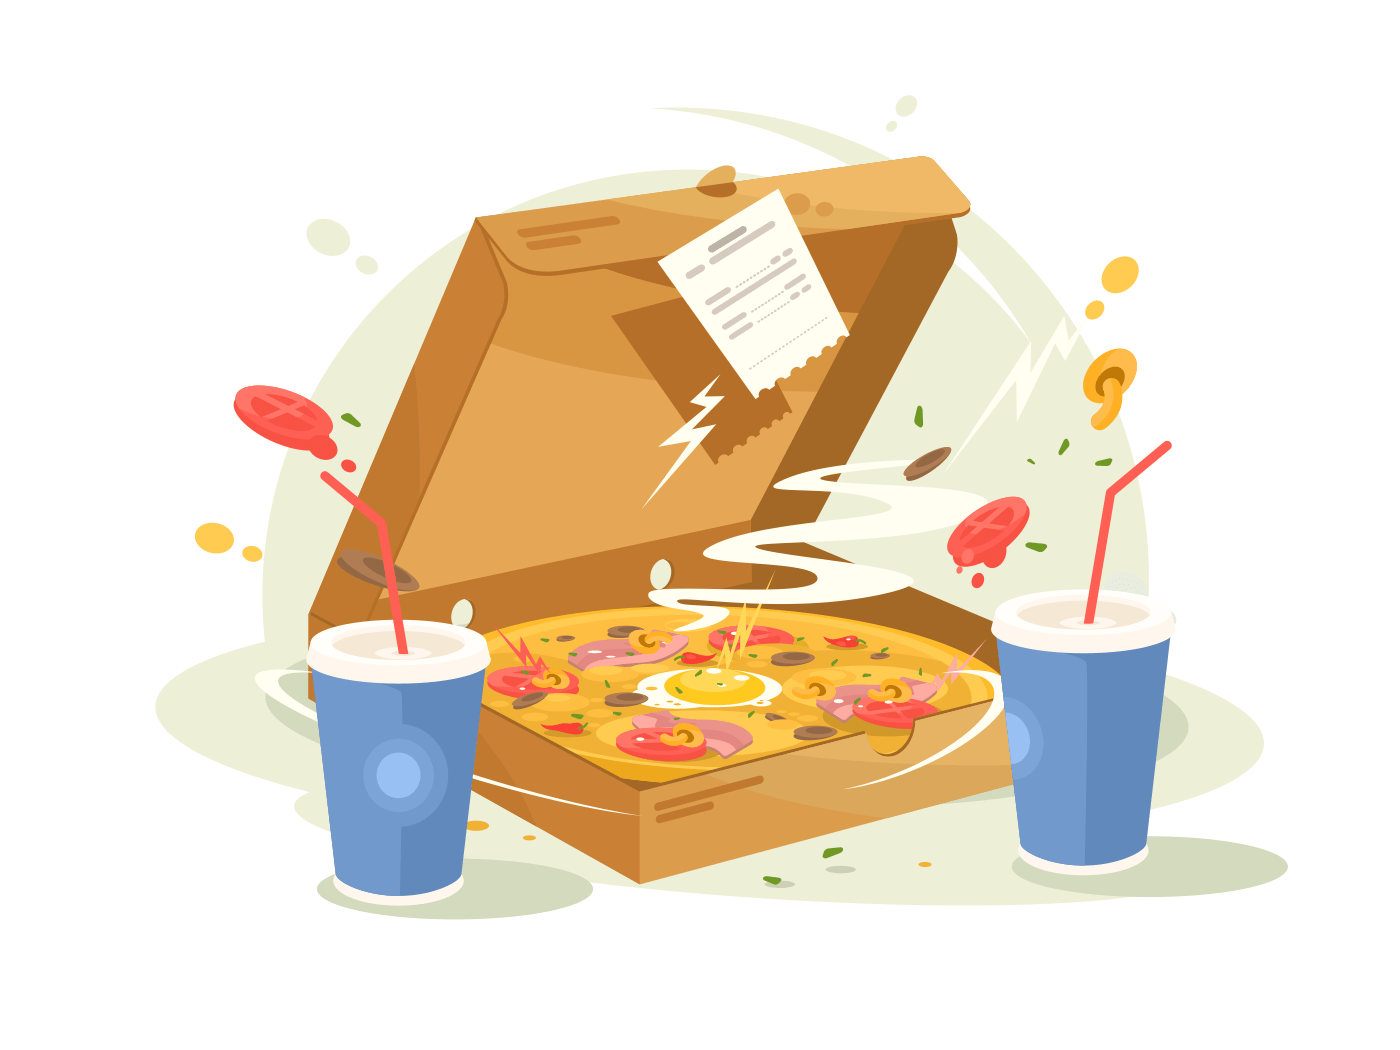 Pizza fast food illustration